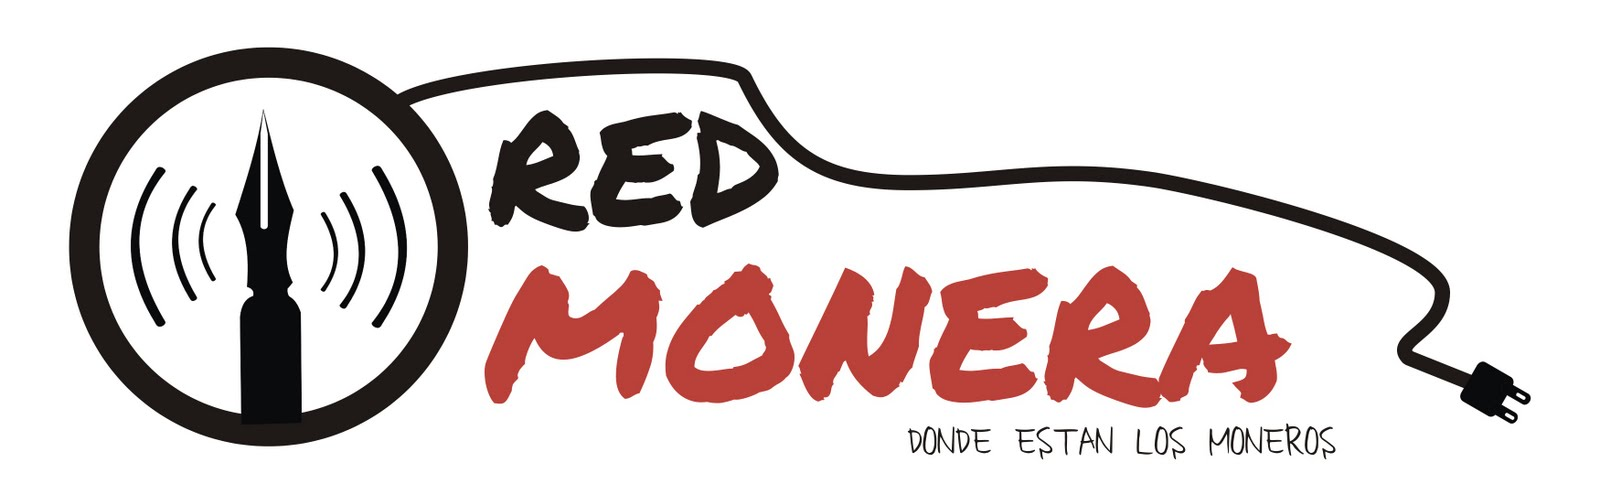 RED MONERA